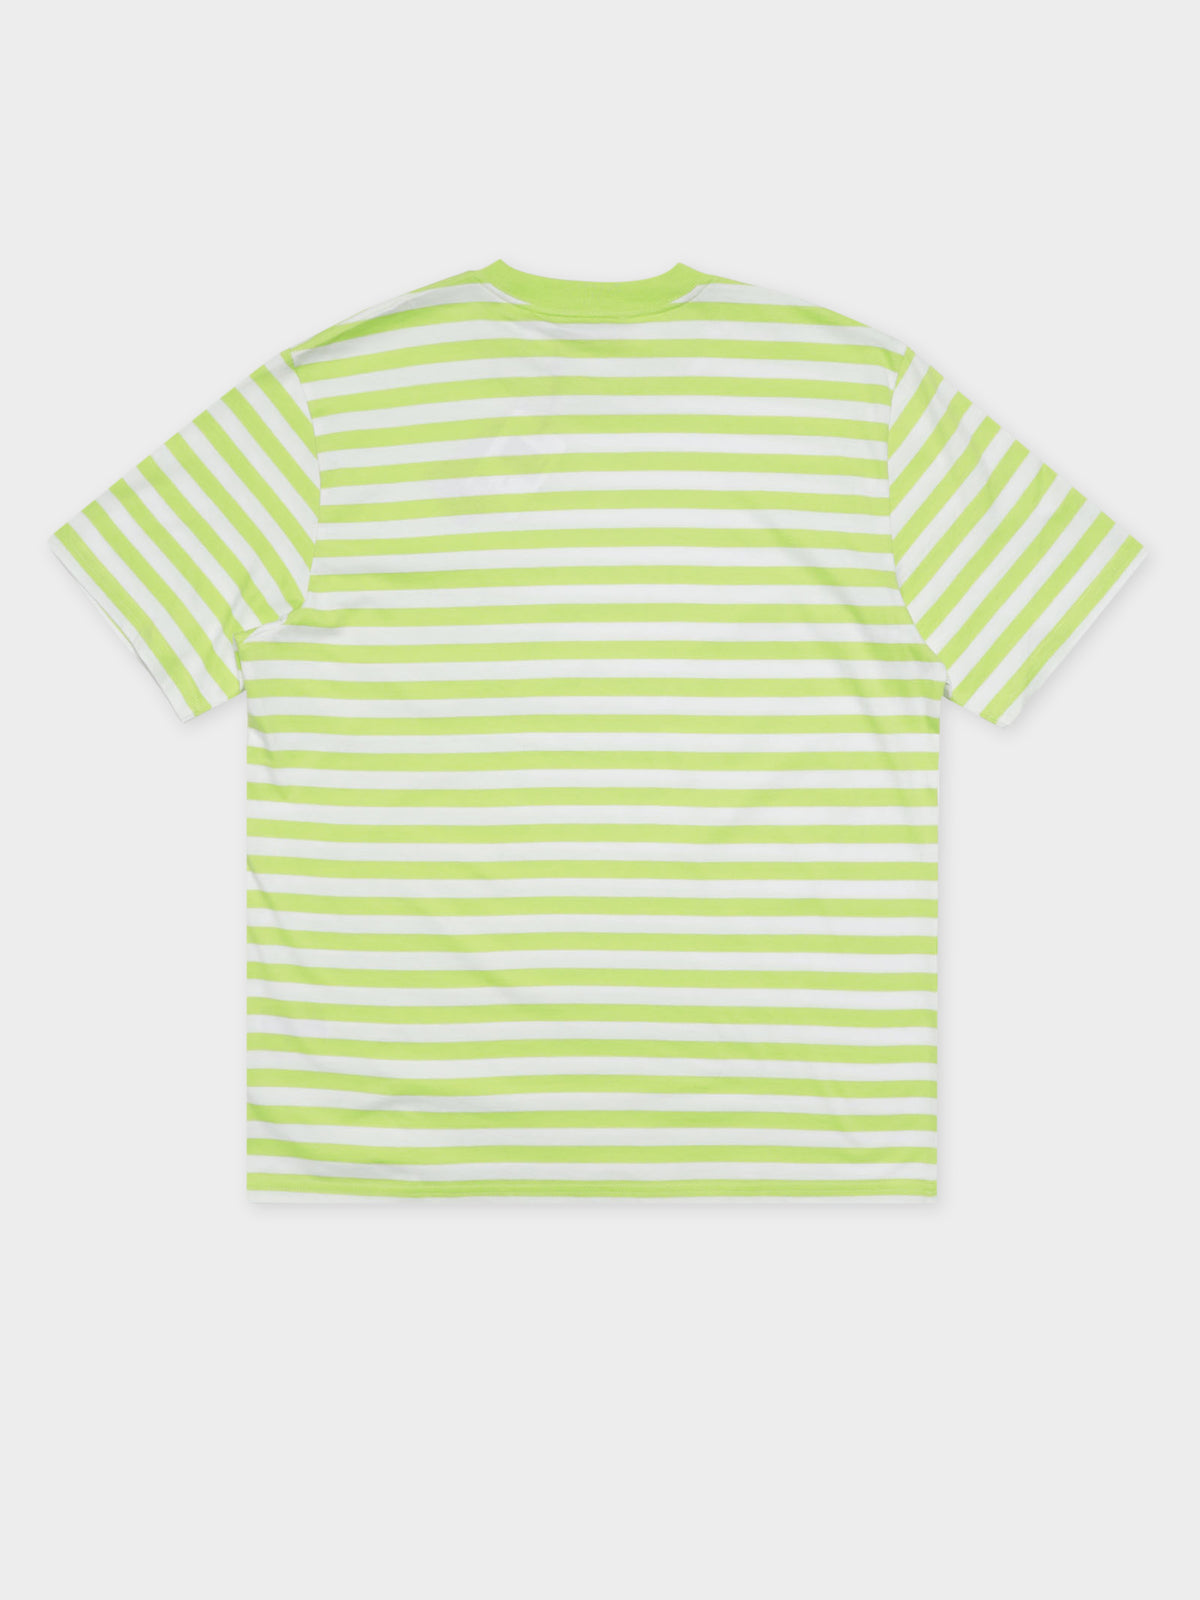 Scotty Short Sleeve T-Shirt in Lime & White Stripe